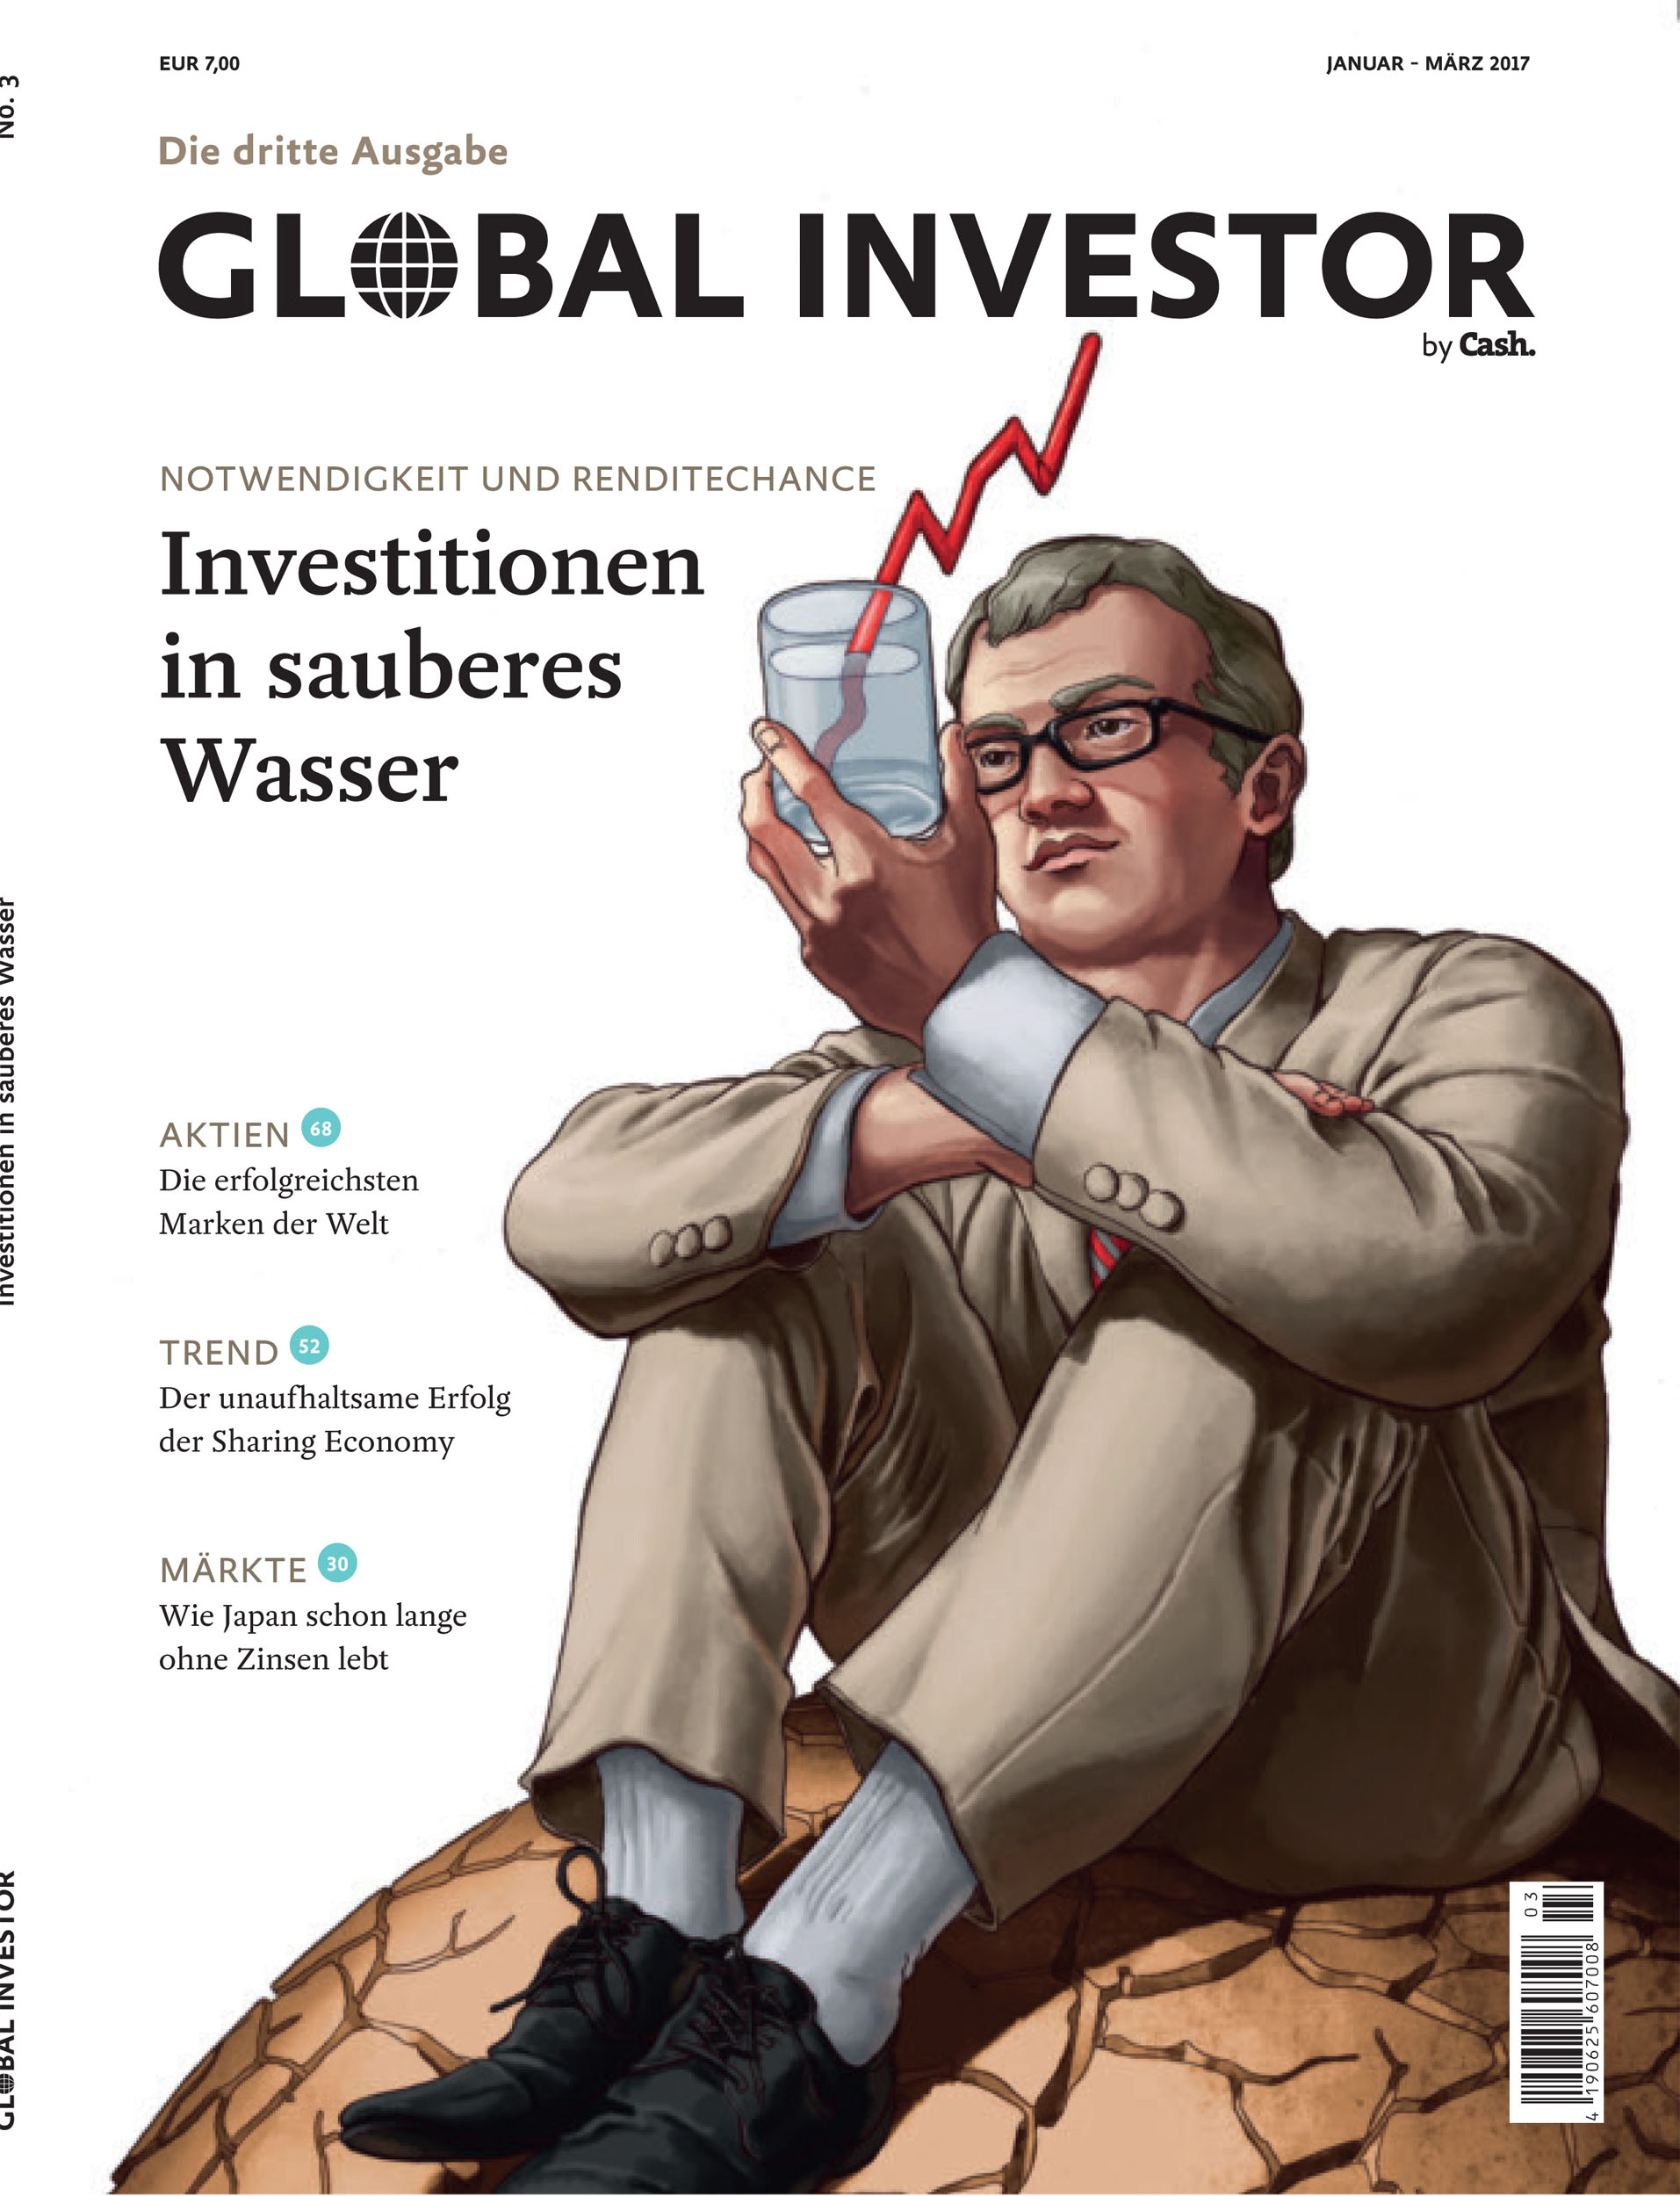 daniel-garcia-art-illustration-global-investor-cash-cover-water-investments